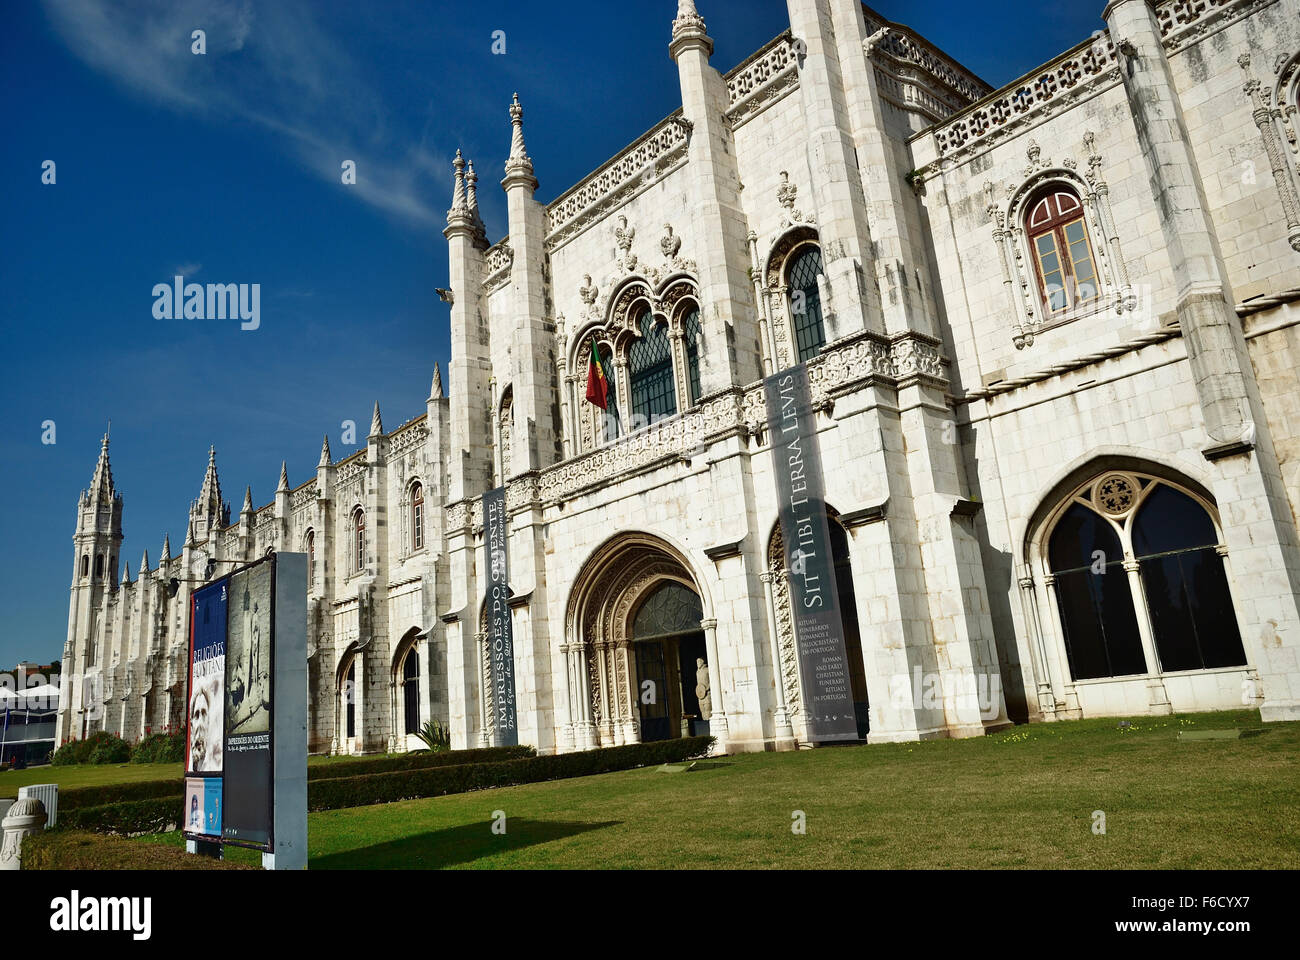 National Archaeology Museum. The Jeronimos Monastery - Mosteiro da Santa Maria de Belém - located in the Belem - Stock Image